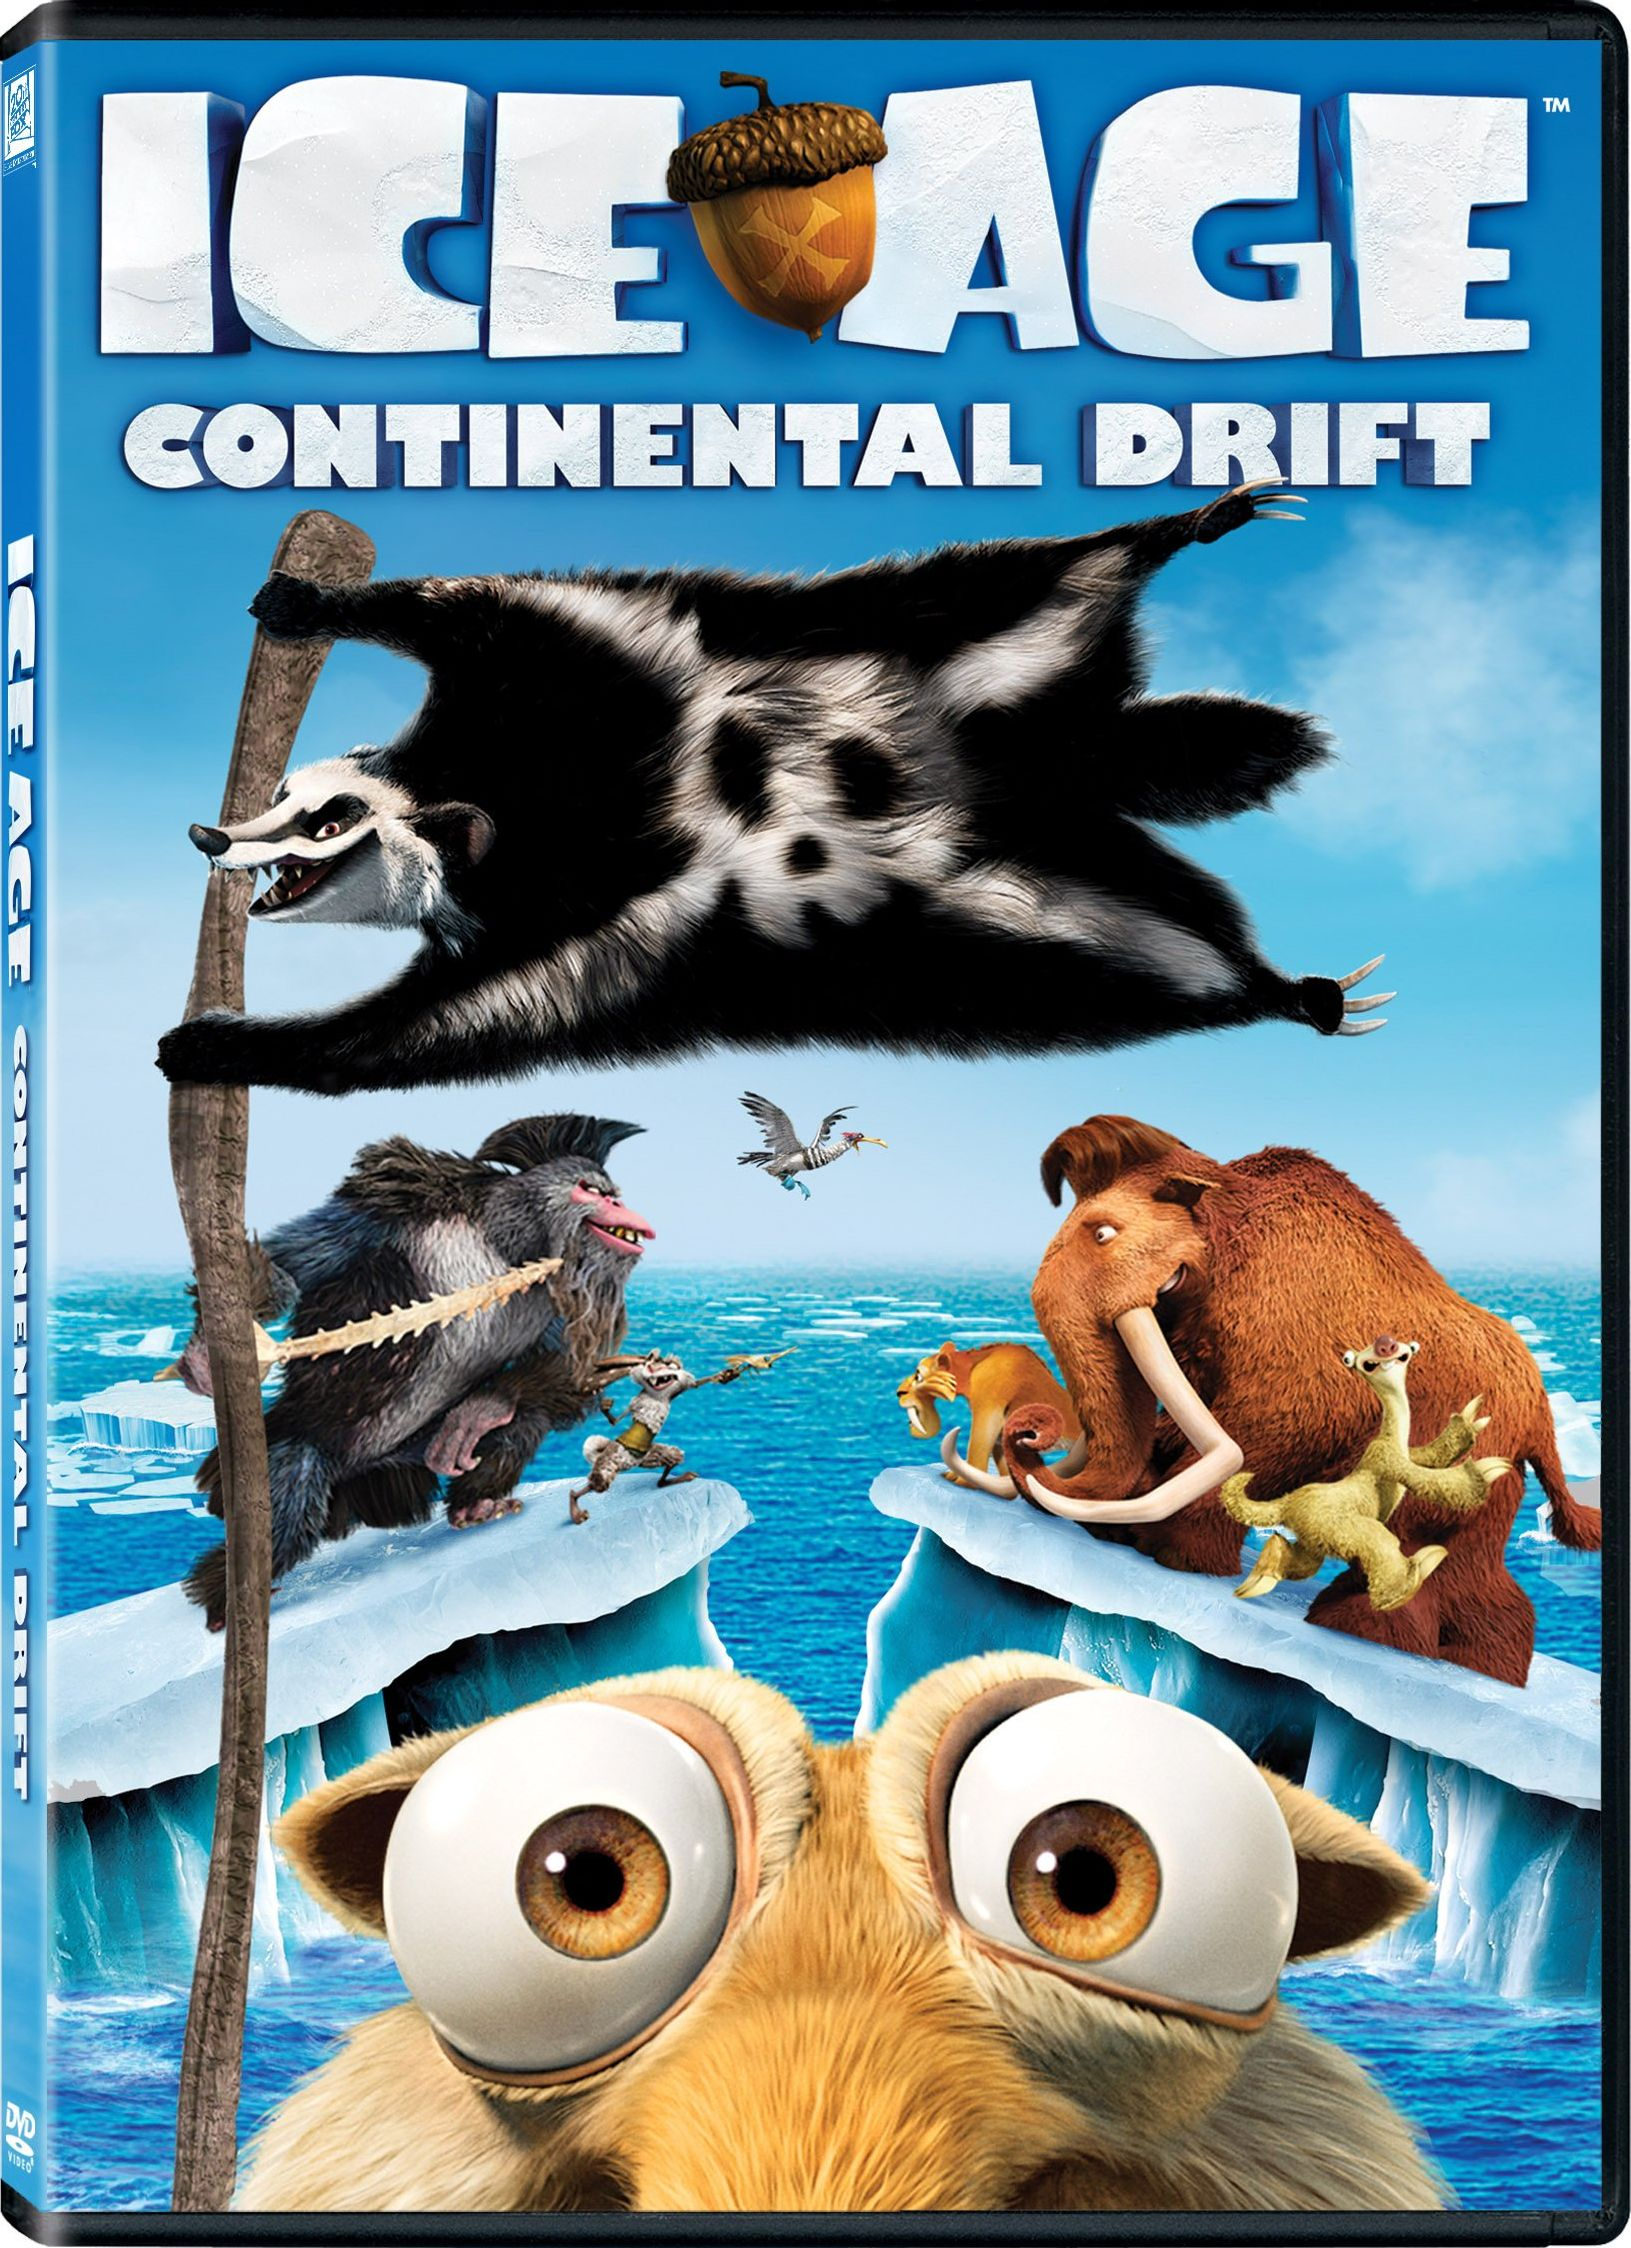 image - ice-age-continental-drift-dvd-cover-86 | ice age wiki